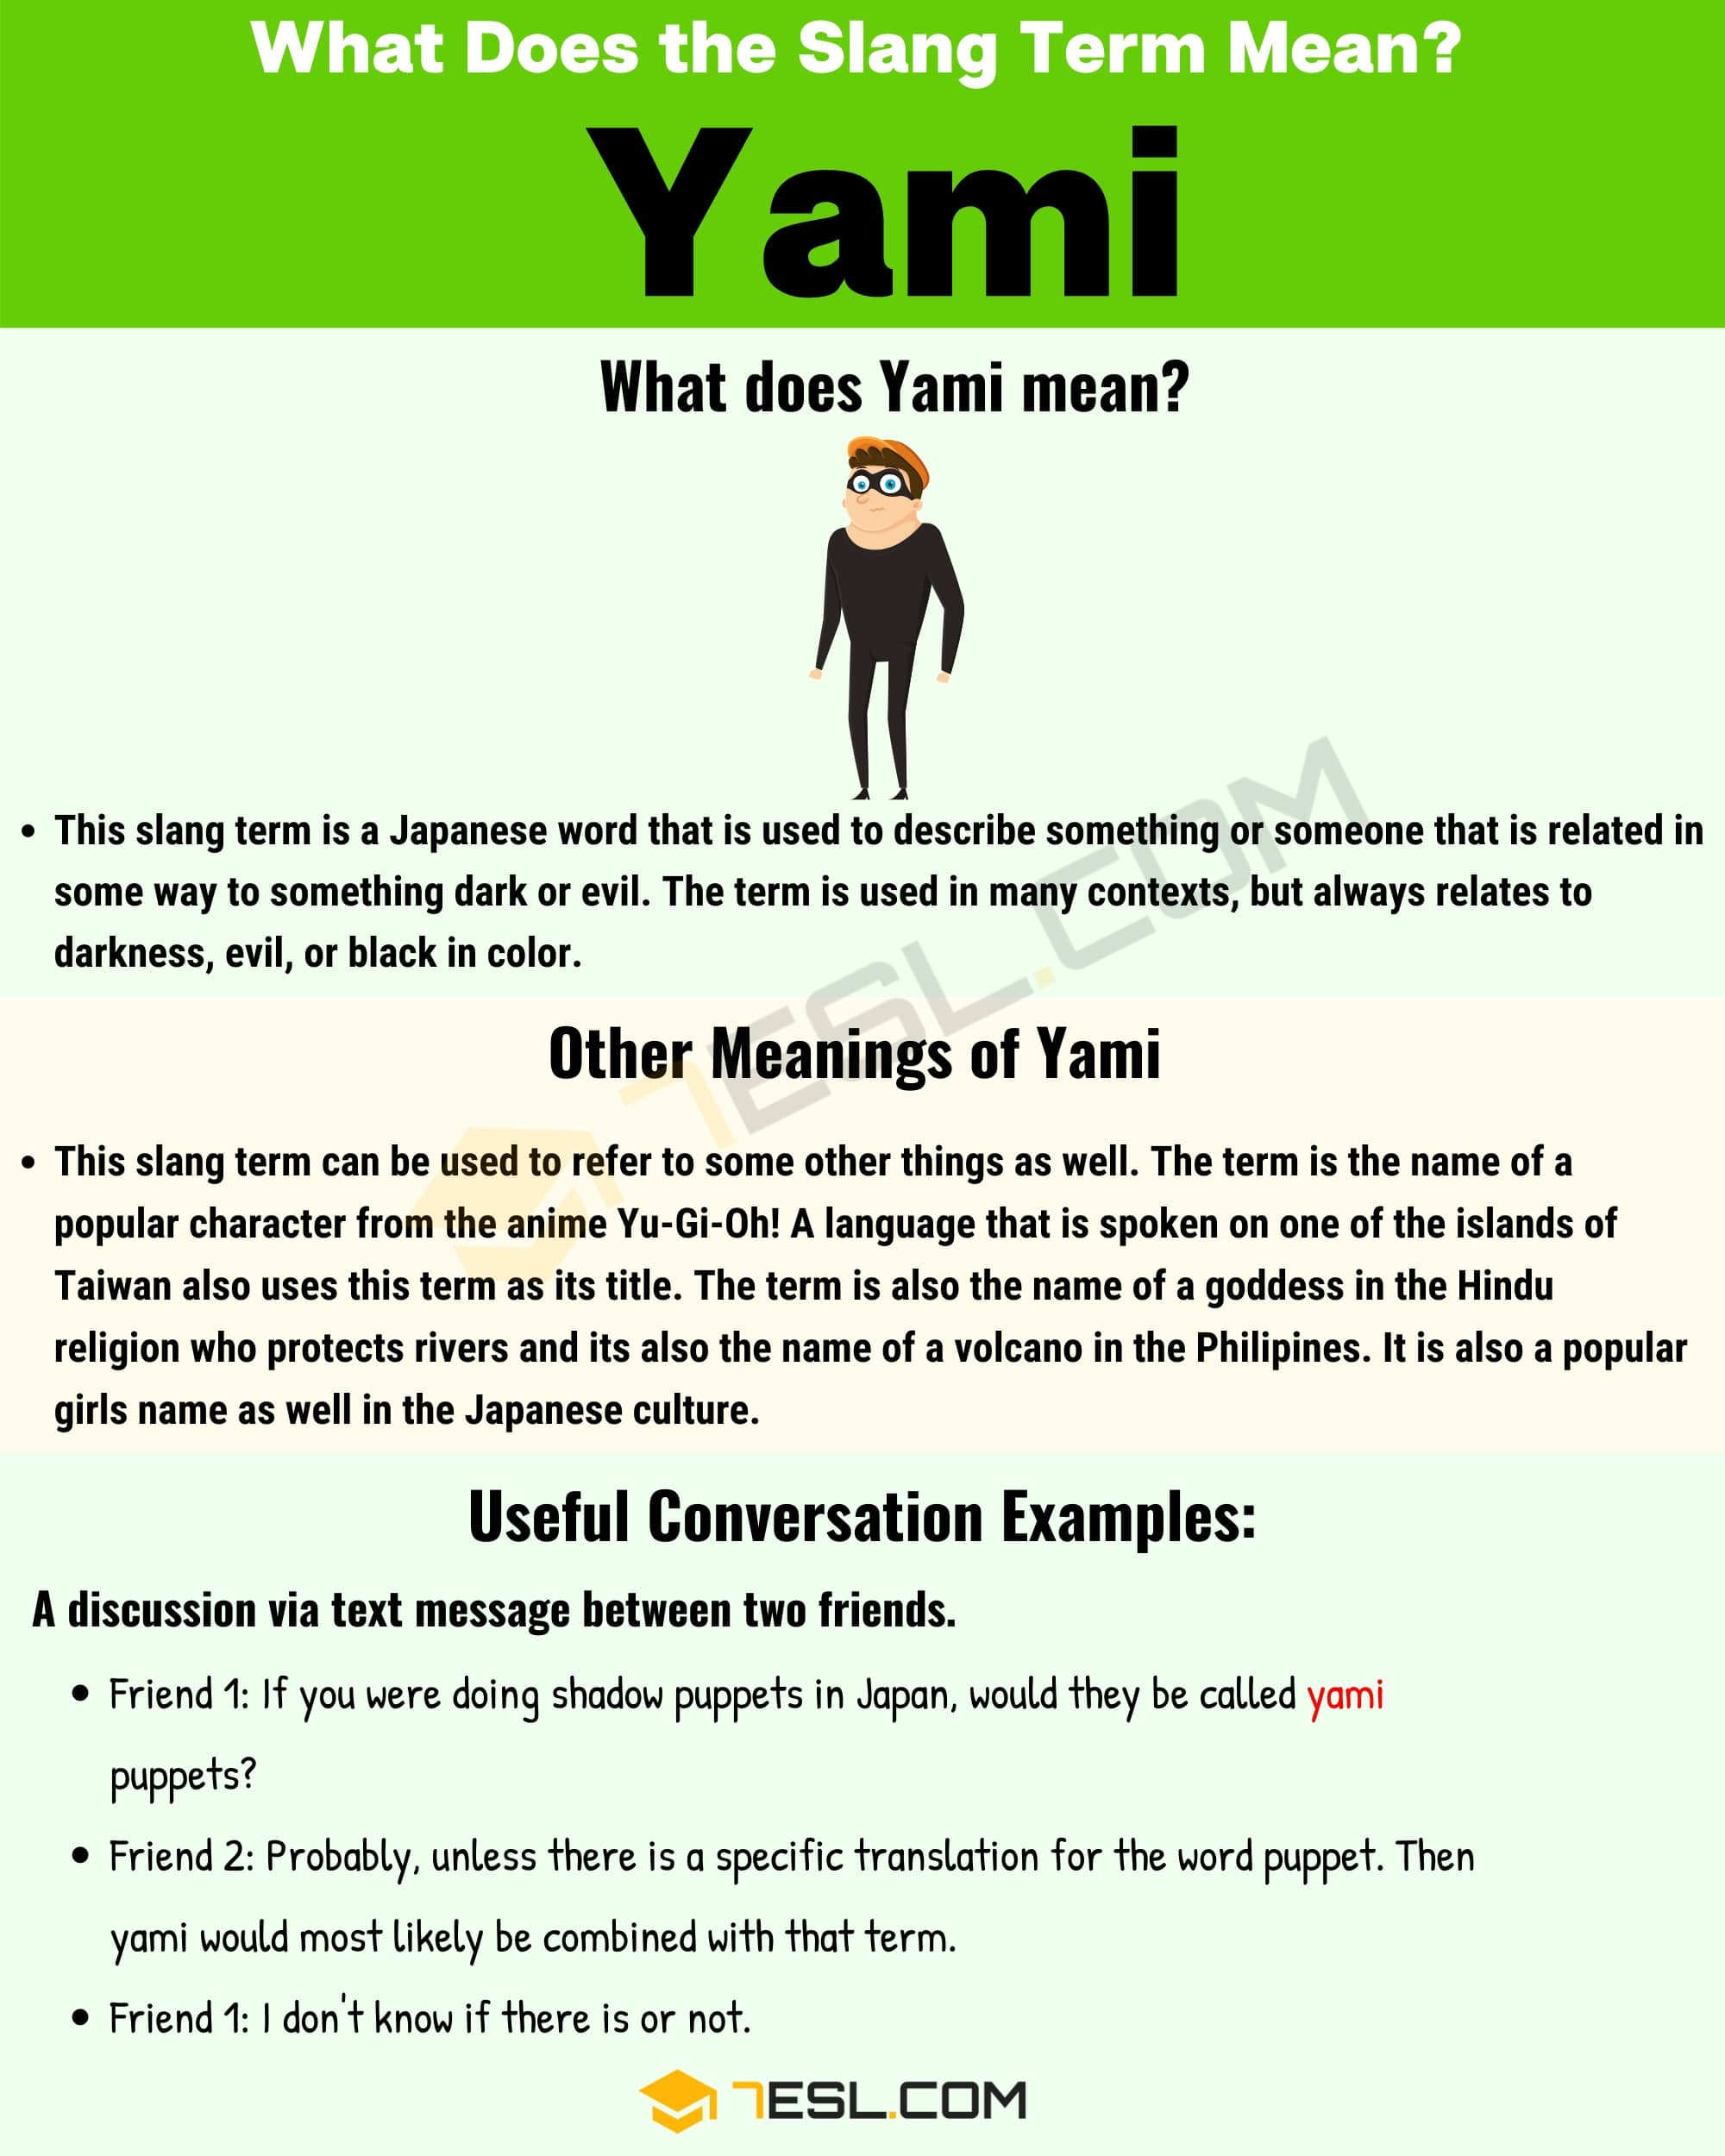 Yami Meaning: How Do You Define the Popular Slang Term 'Yami'? 1